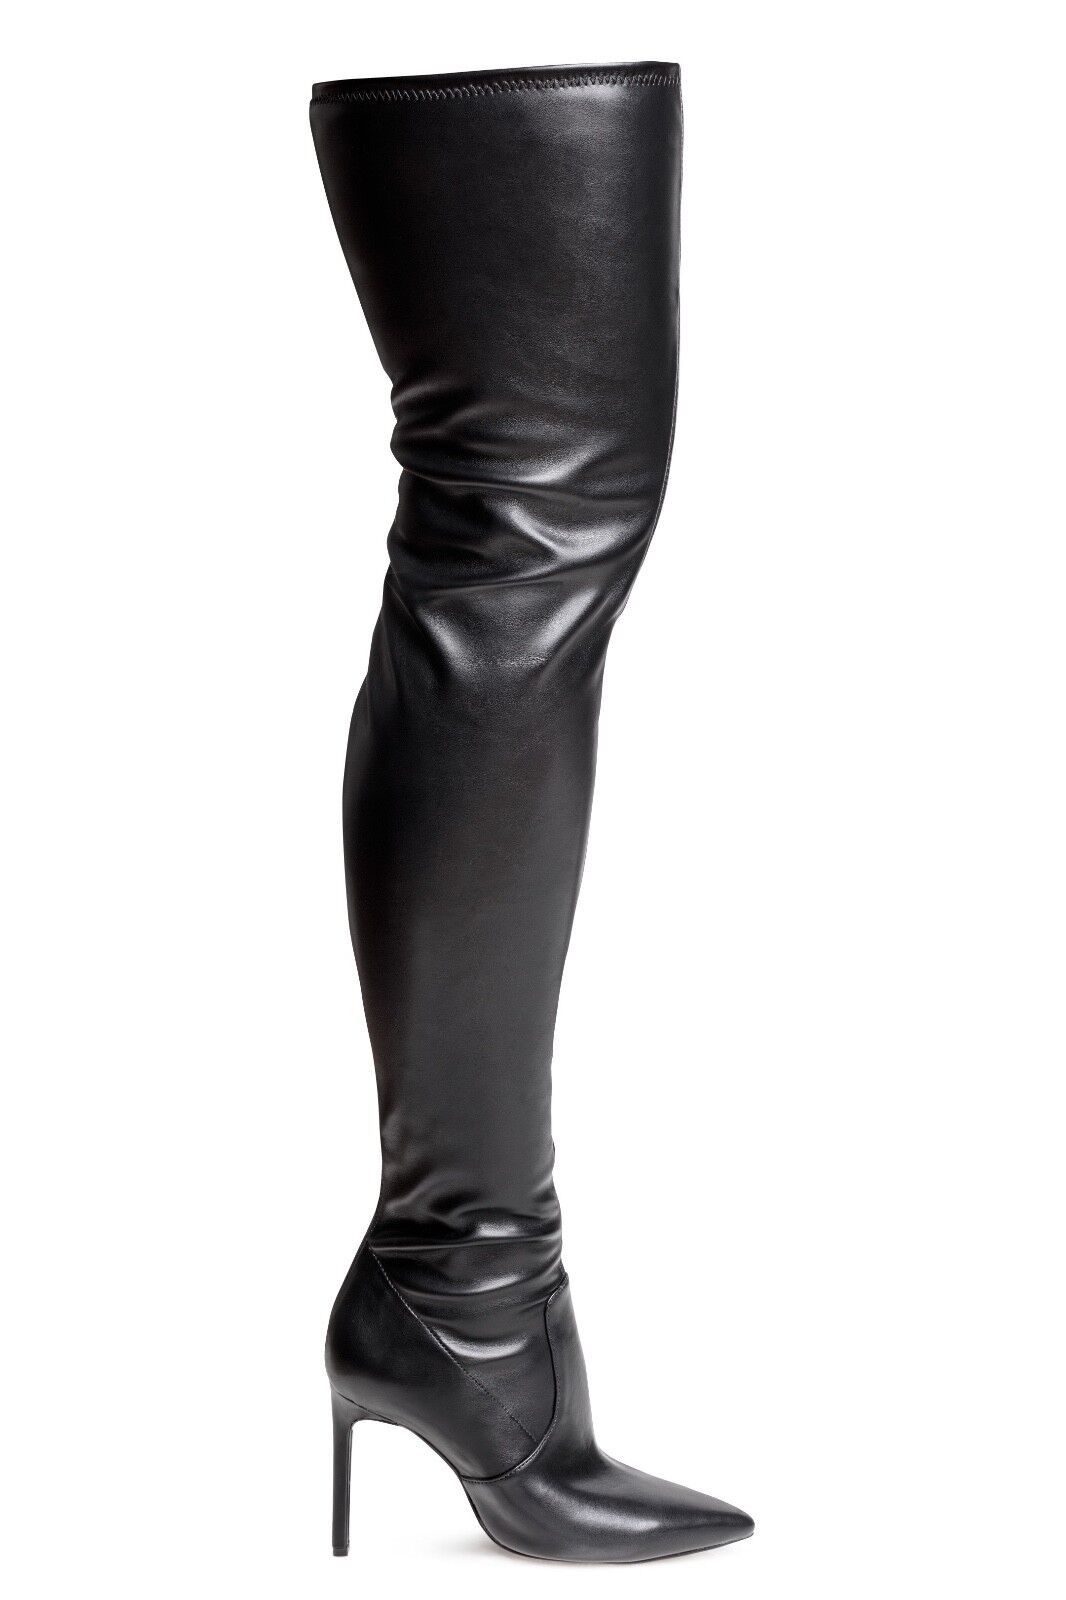 H&M LEATHER THIGH bottes Taille 38, 39